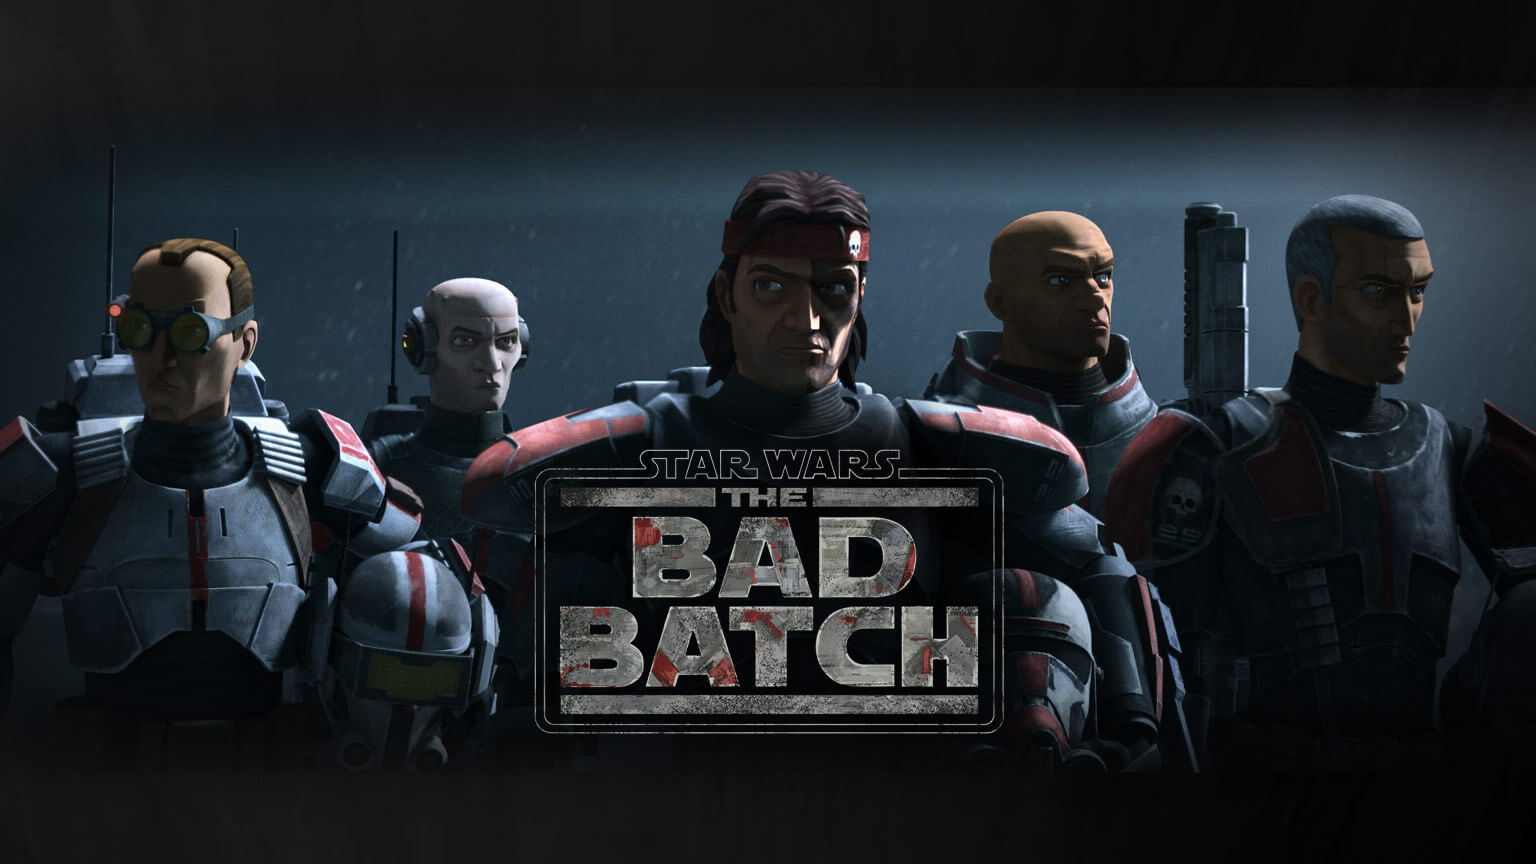 Star Wars: The Bad Batch premiers May the Fourth!